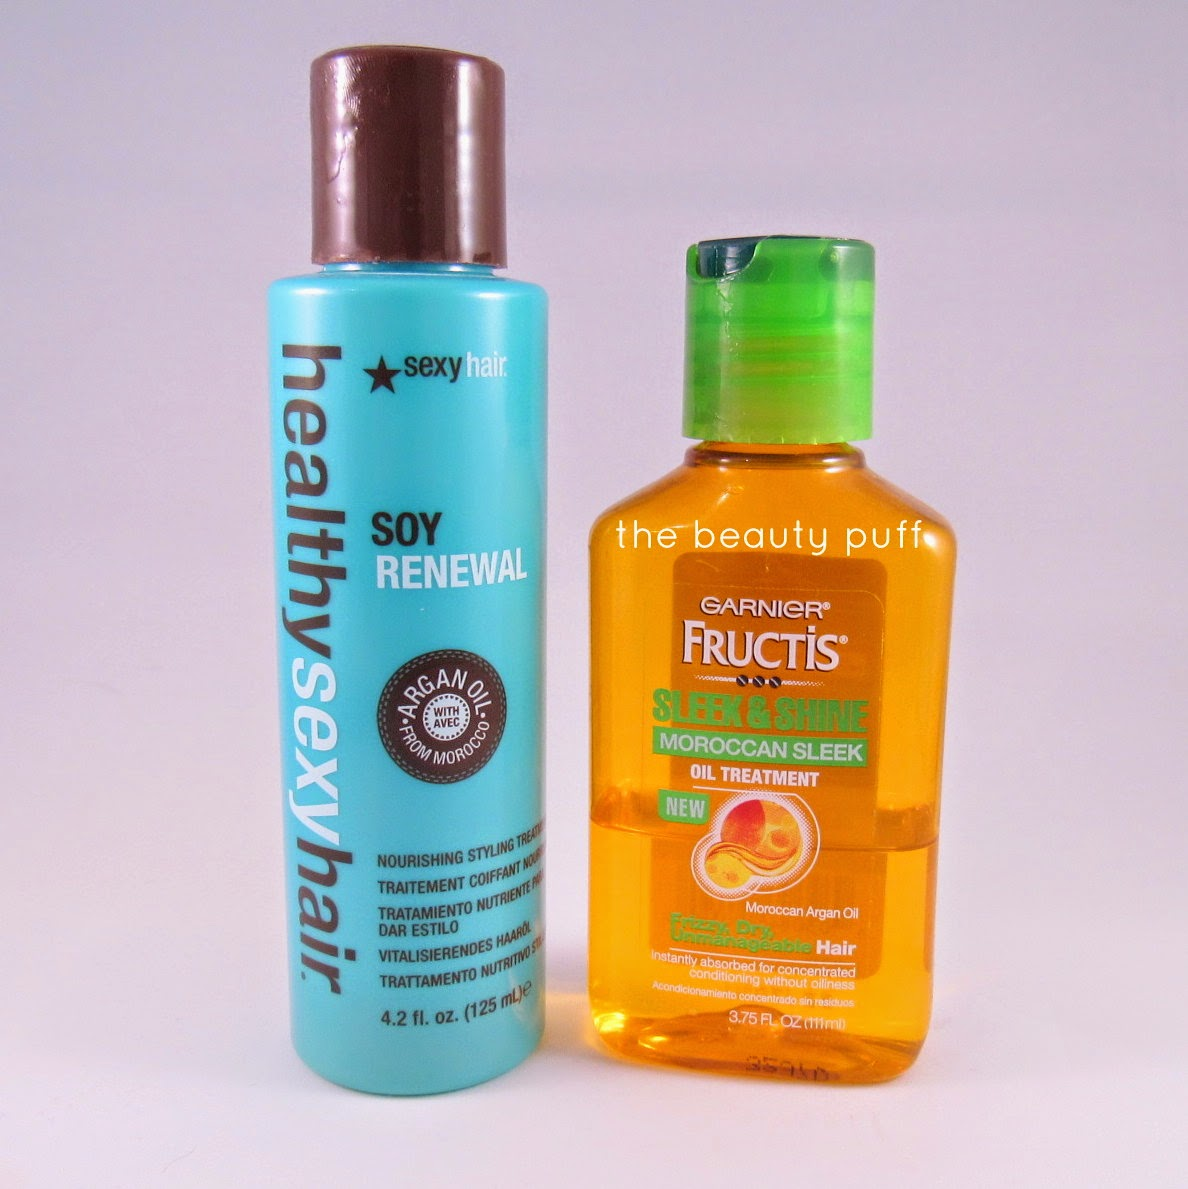 healthy sexy hair garnier fructis hair serum - the beauty puff